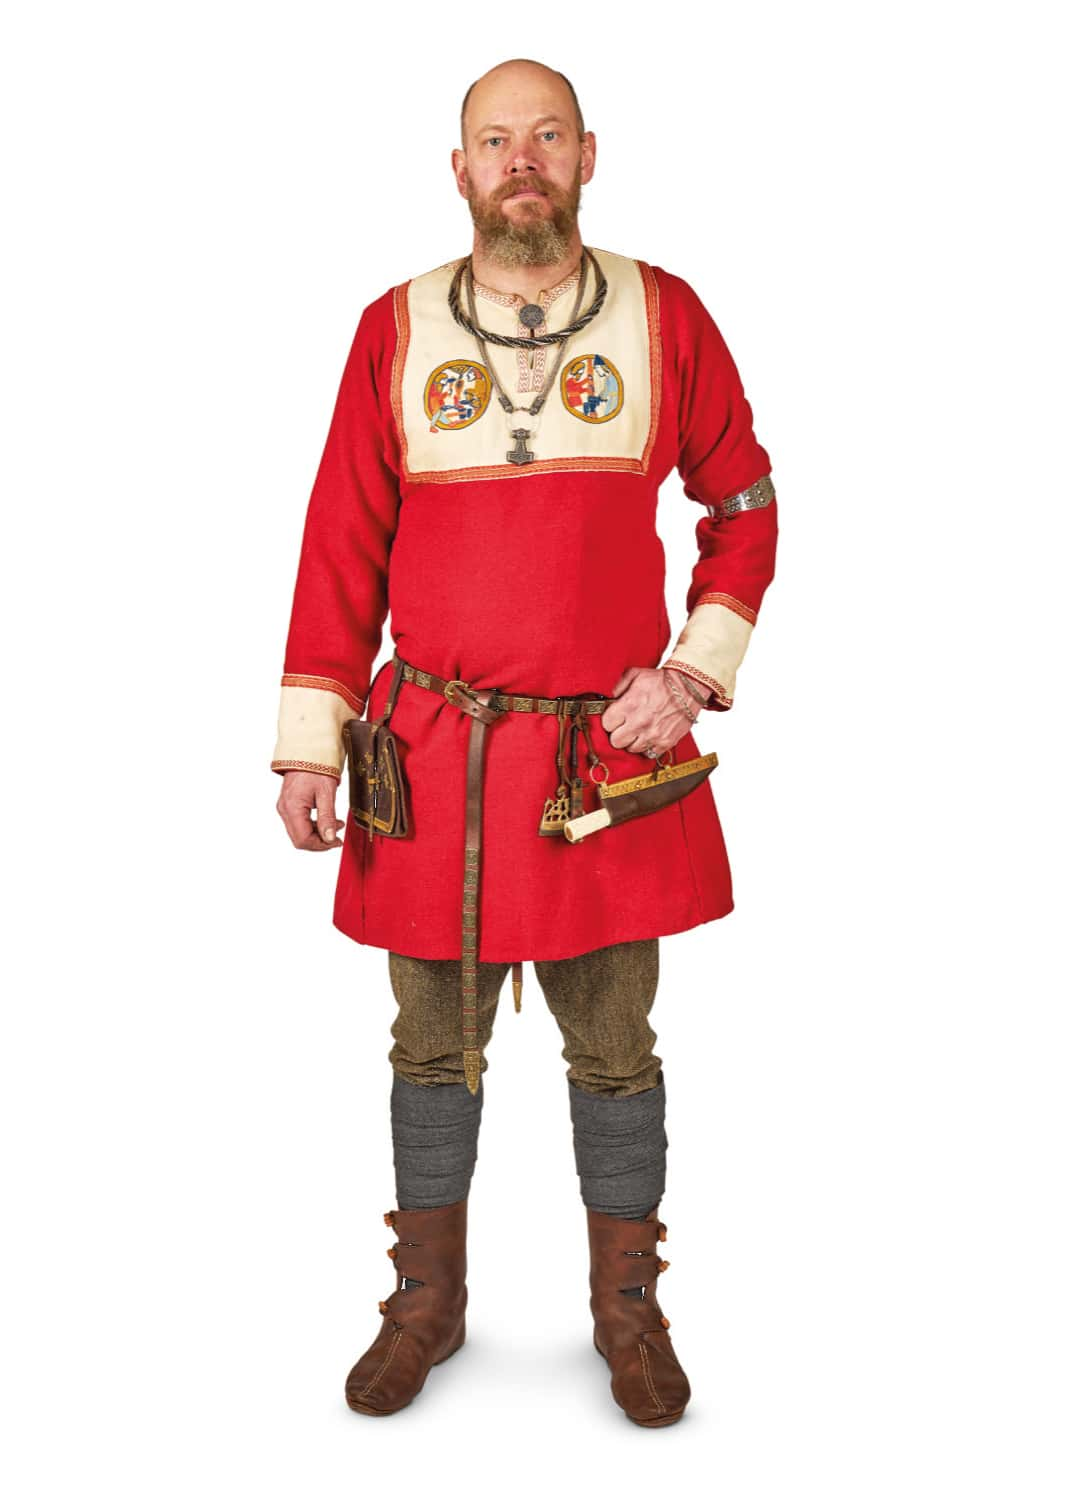 The image shows a Viking man dressed in elaborate clothes